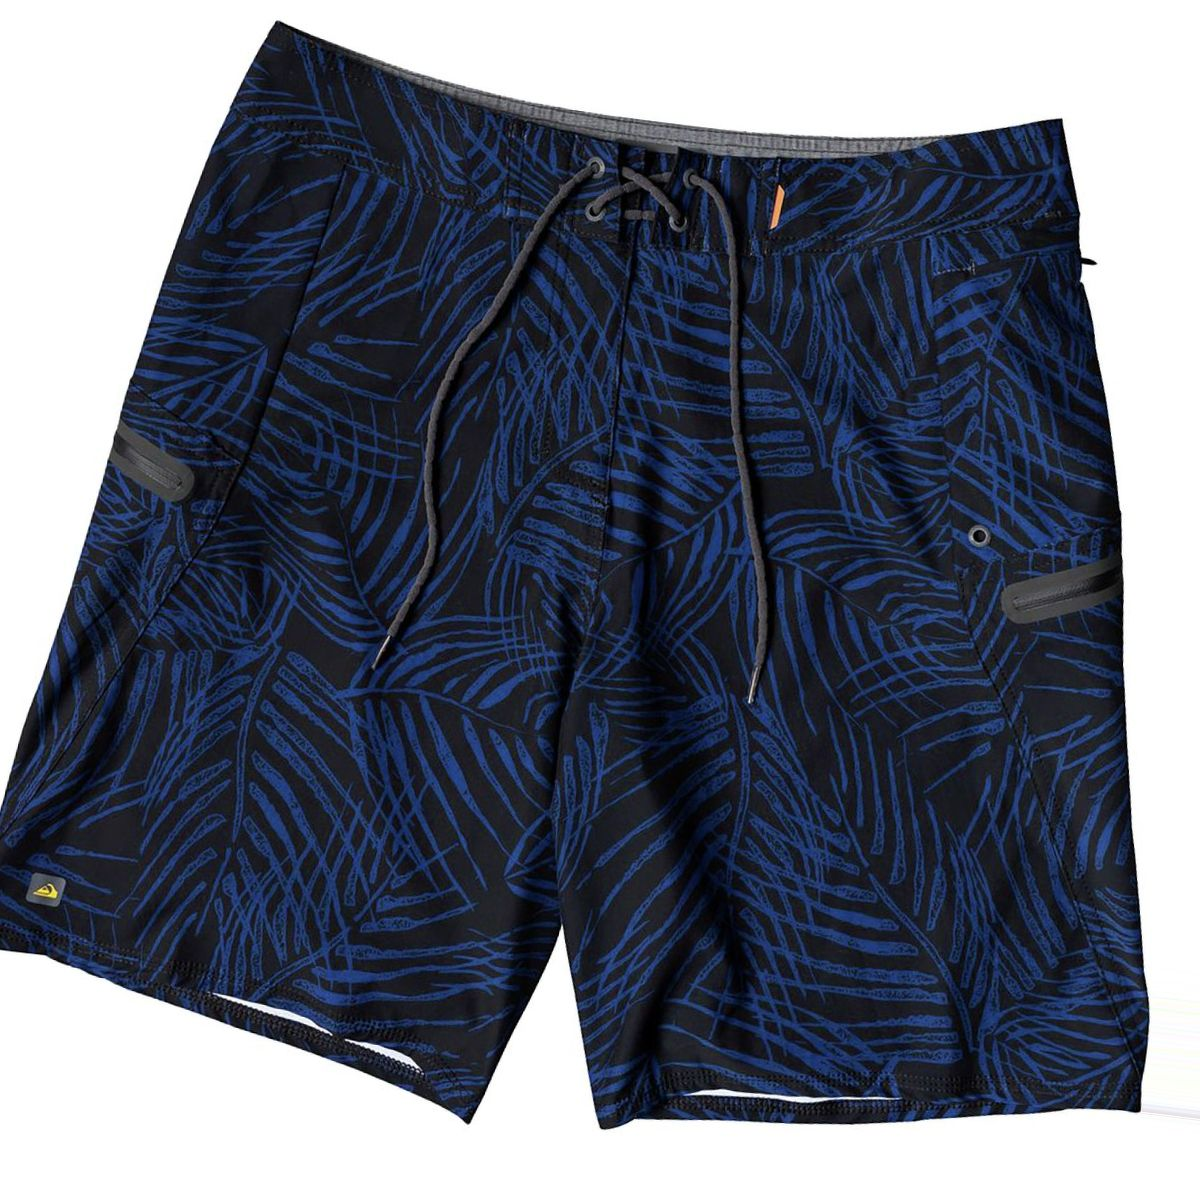 Quiksilver Waterman Paddler Prints 20in Boardshort - Men's